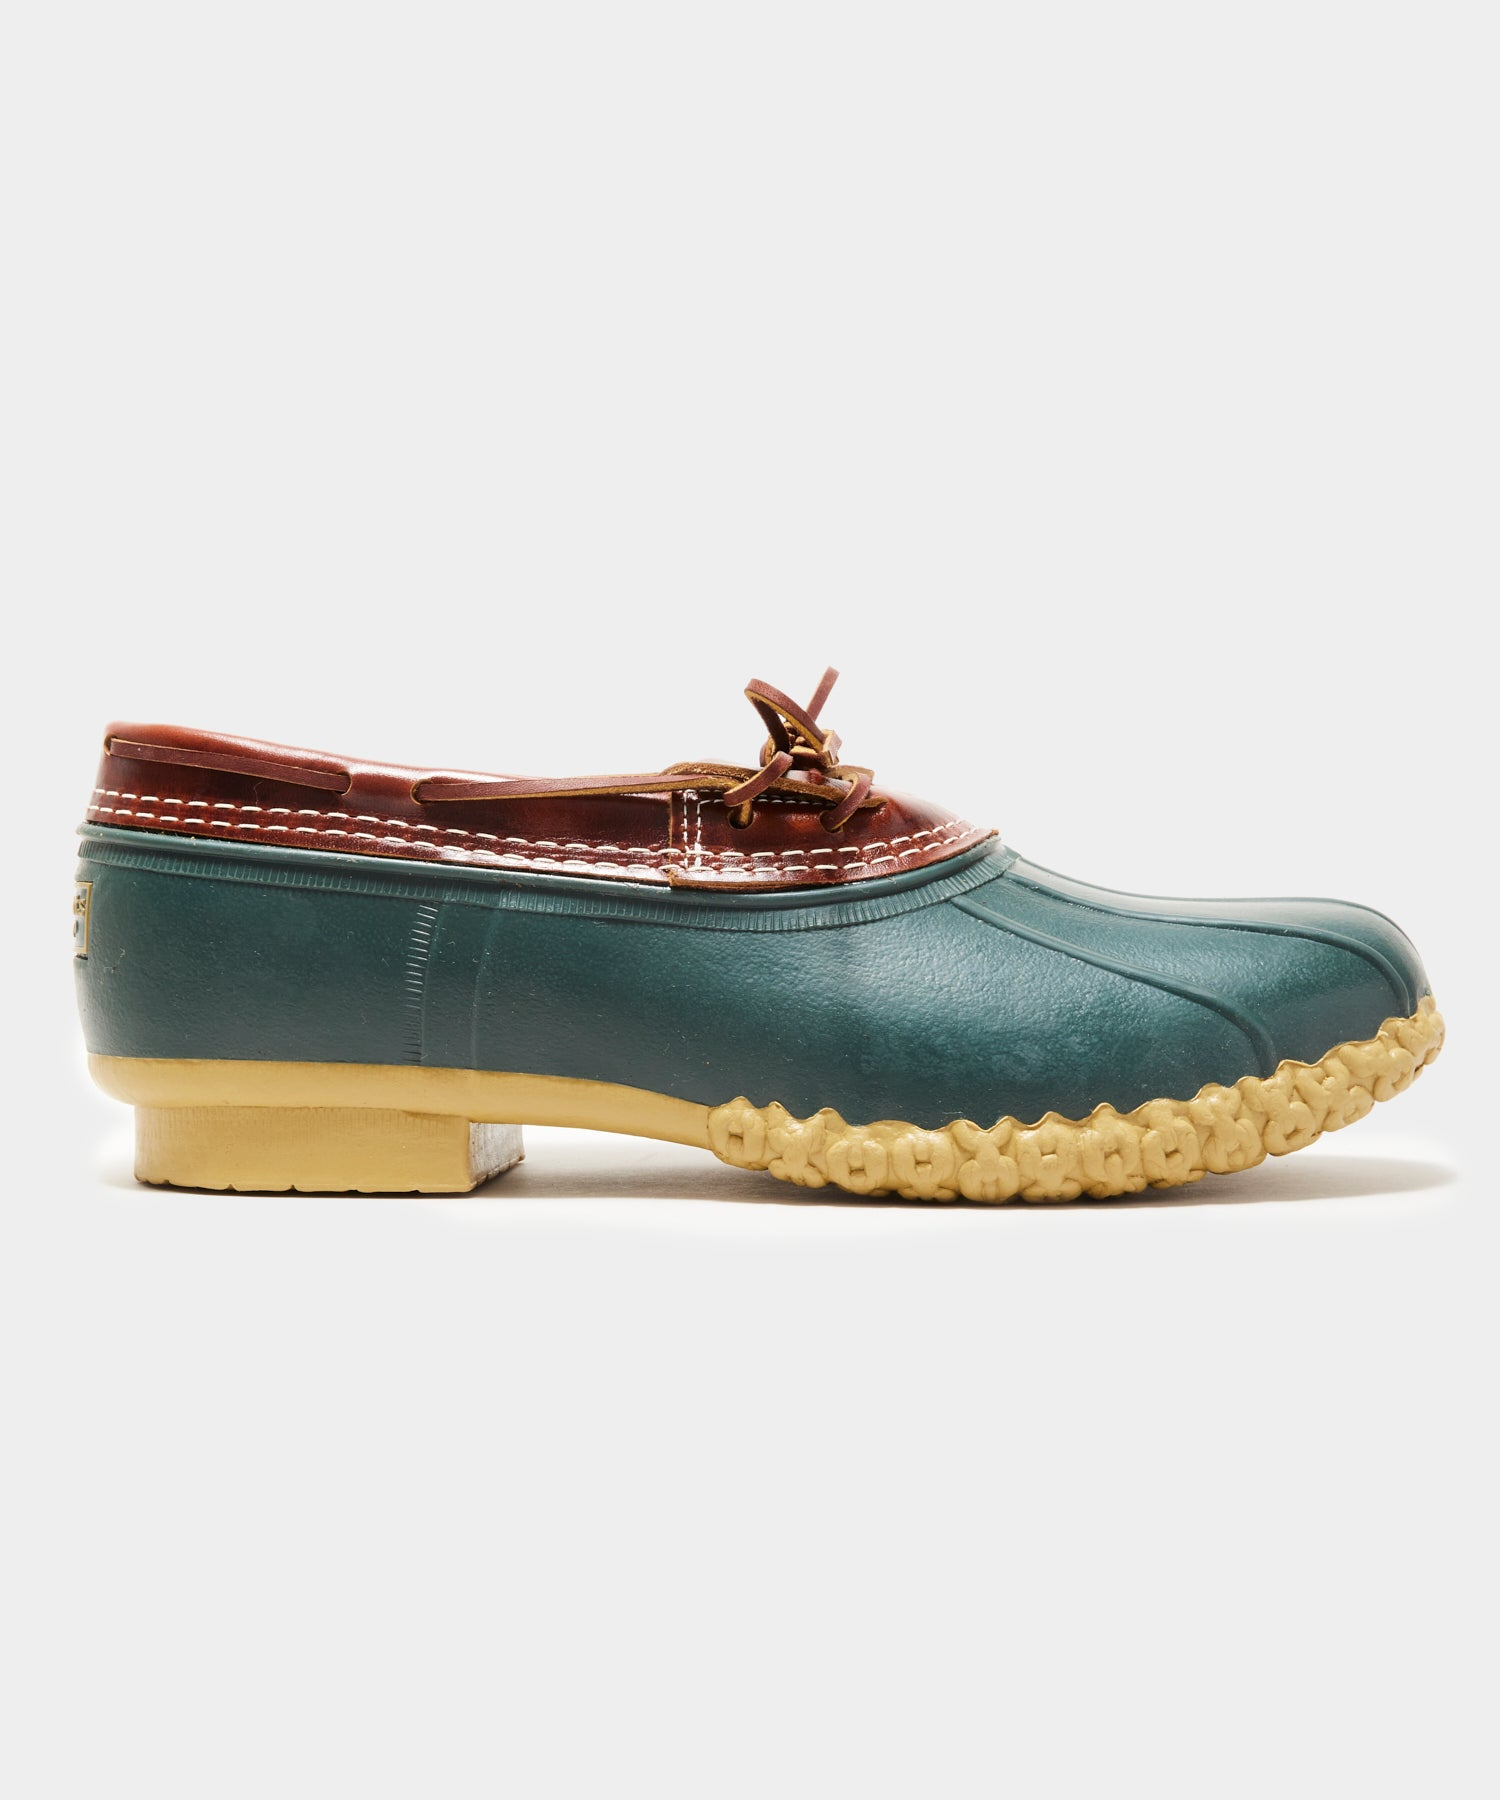 L.L.Bean Rubber Moc Boot in Emerald